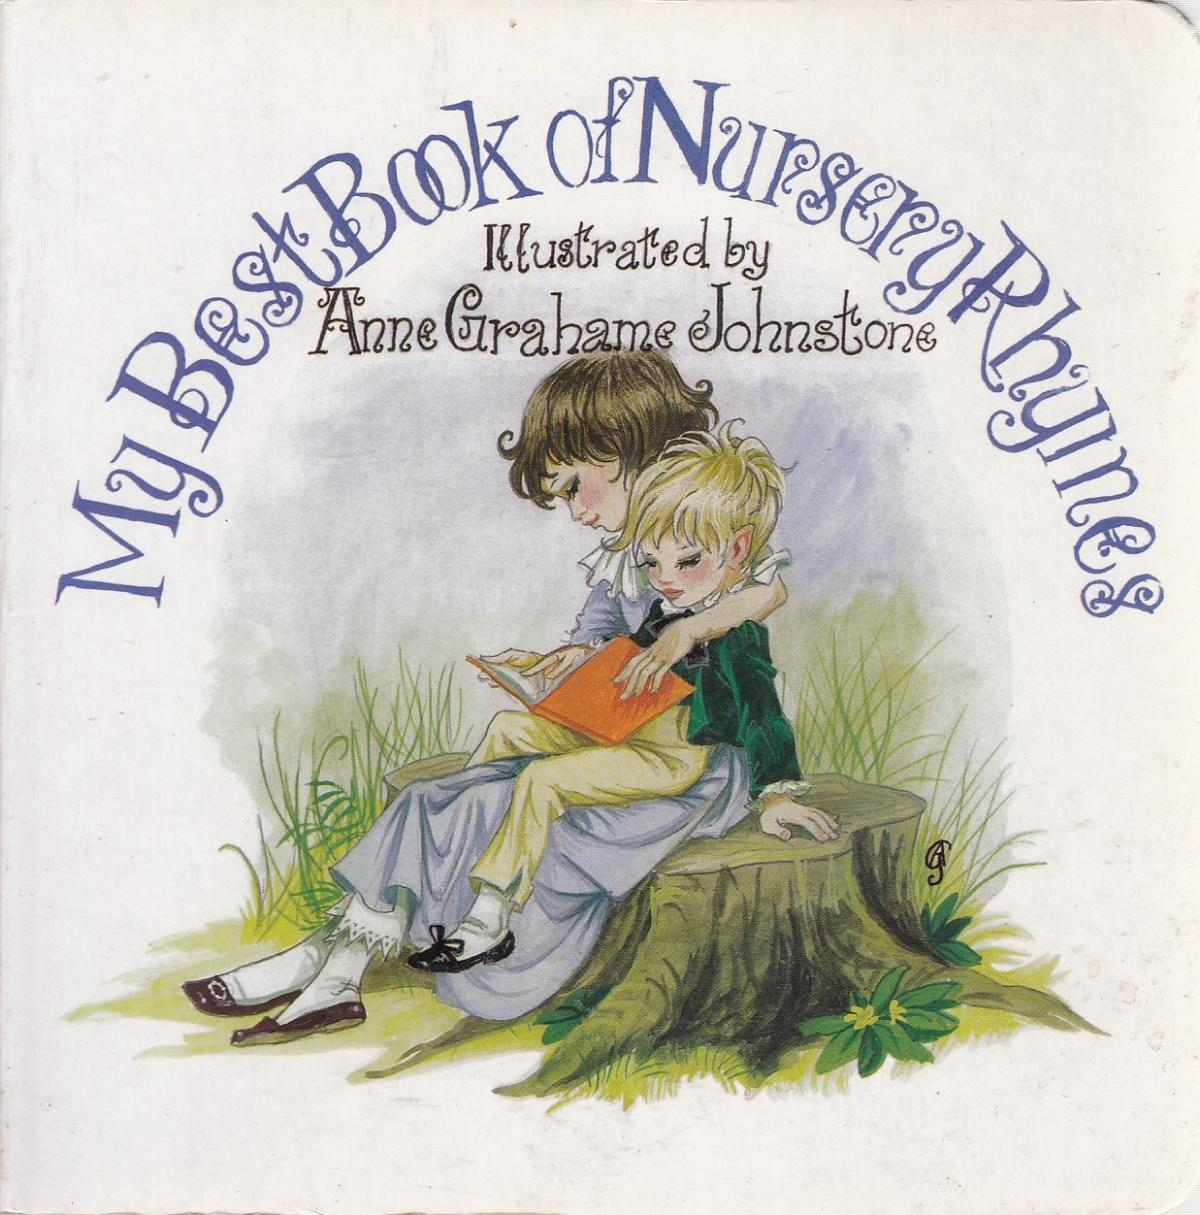 Janet Anne Grahame Johnstone My Best Book of Nursery Rhymes